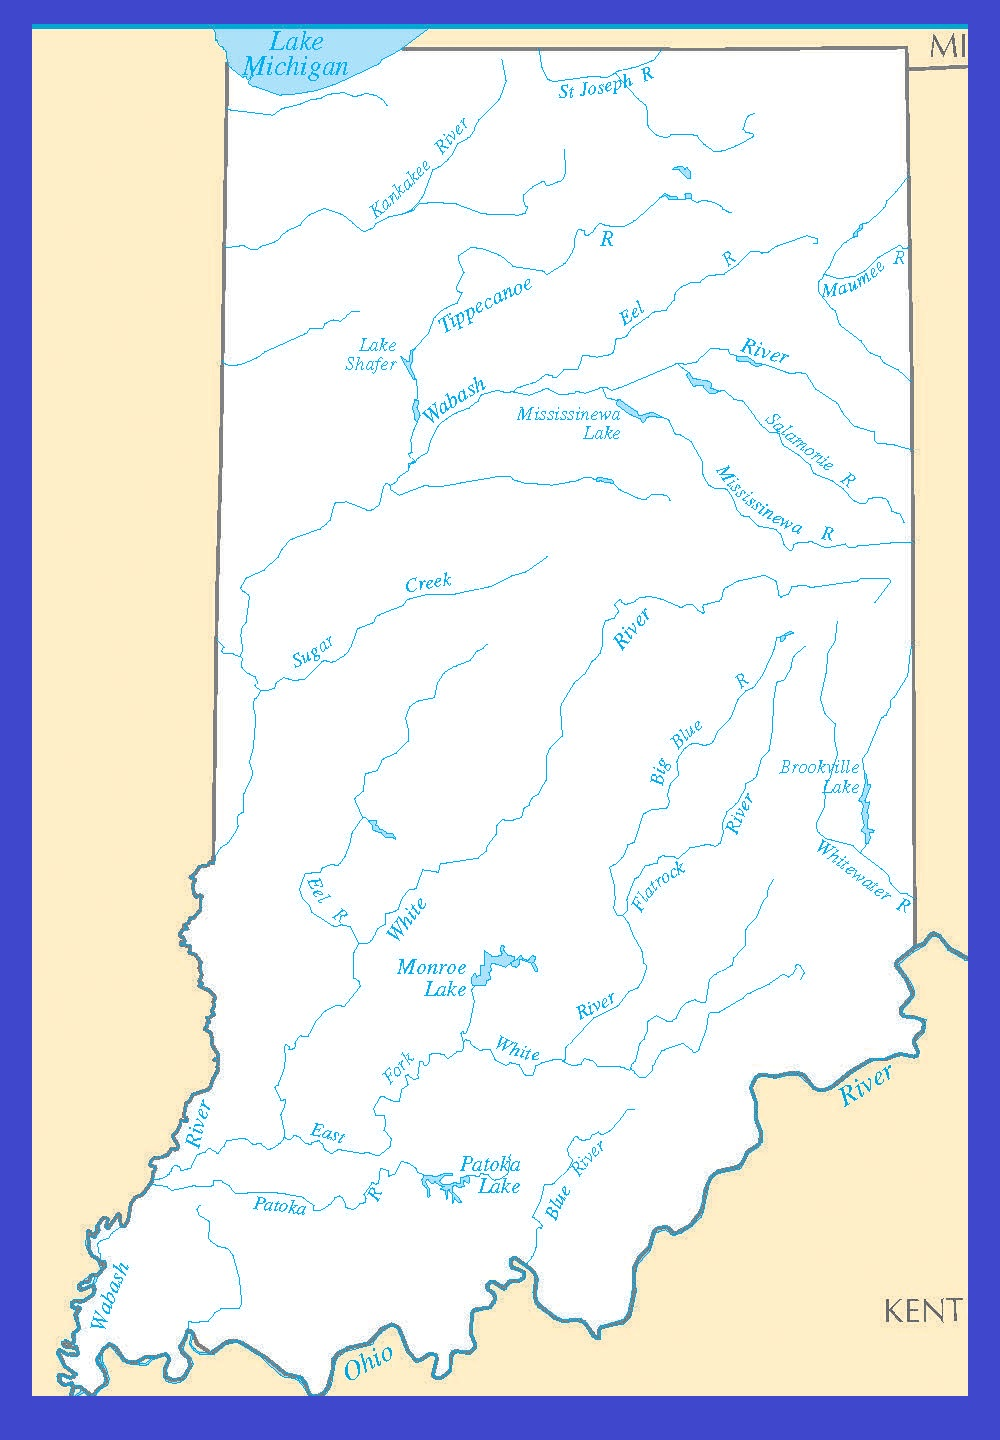 Indiana Rivers Map | Large Printable High Resolution and Standard Map